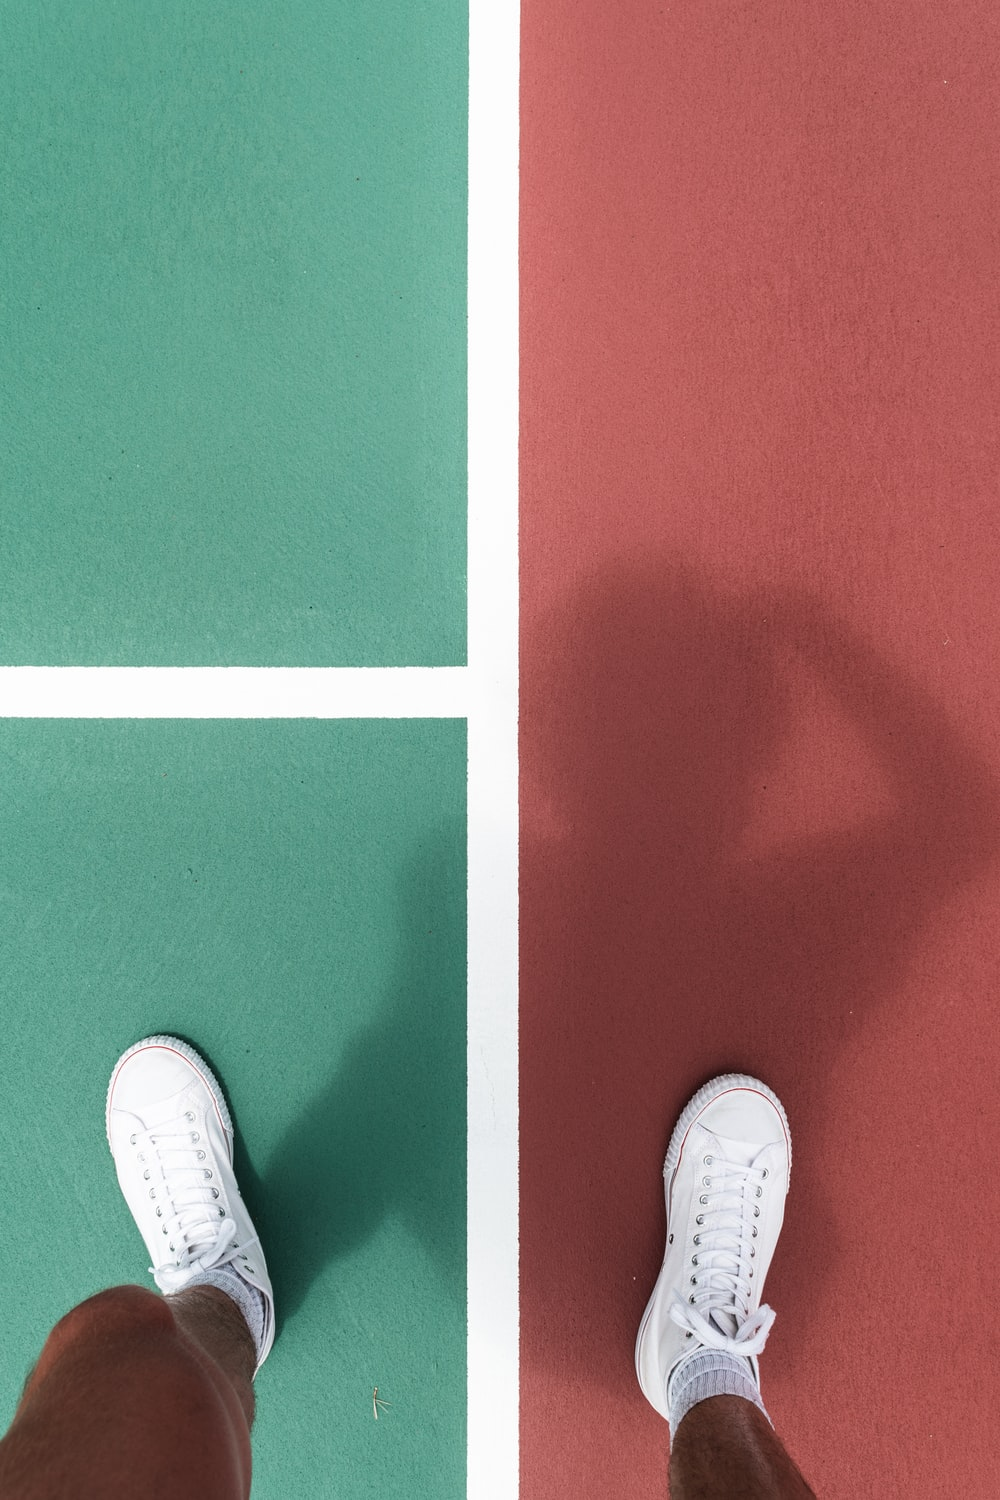 person wearing white sneakers standing on between green and red pavement